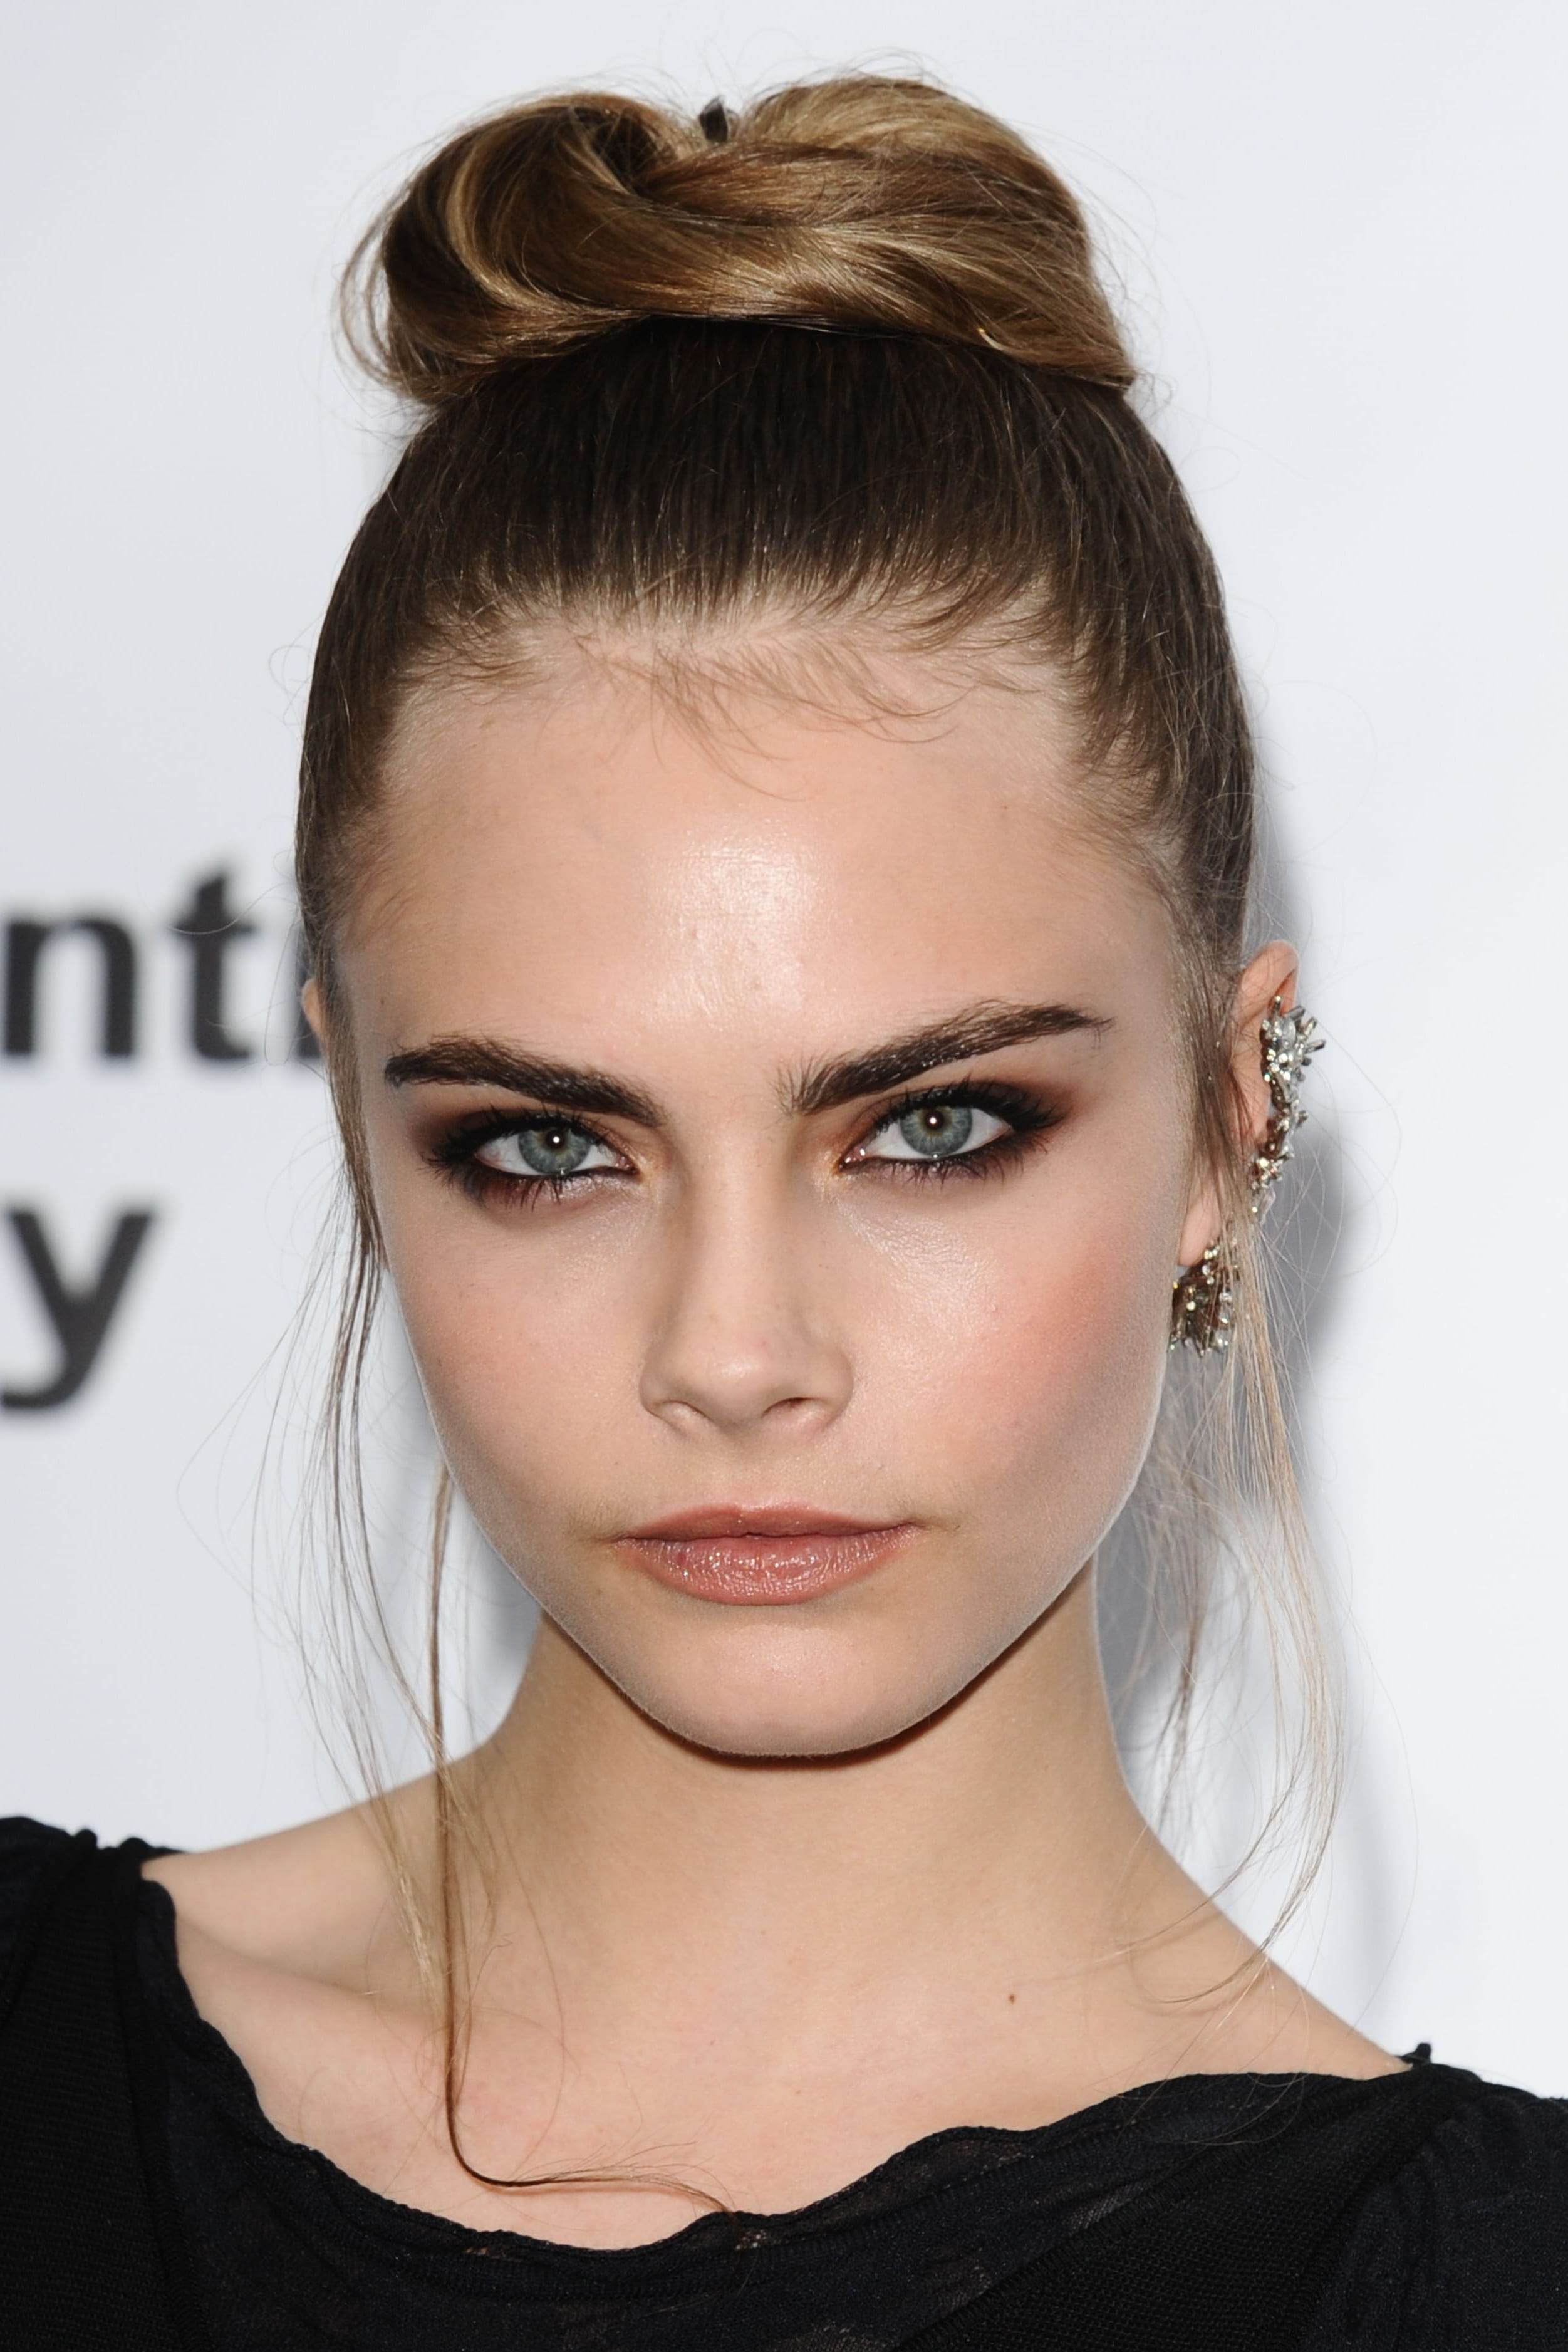 Cara Delevigne's Sleek Top Bun